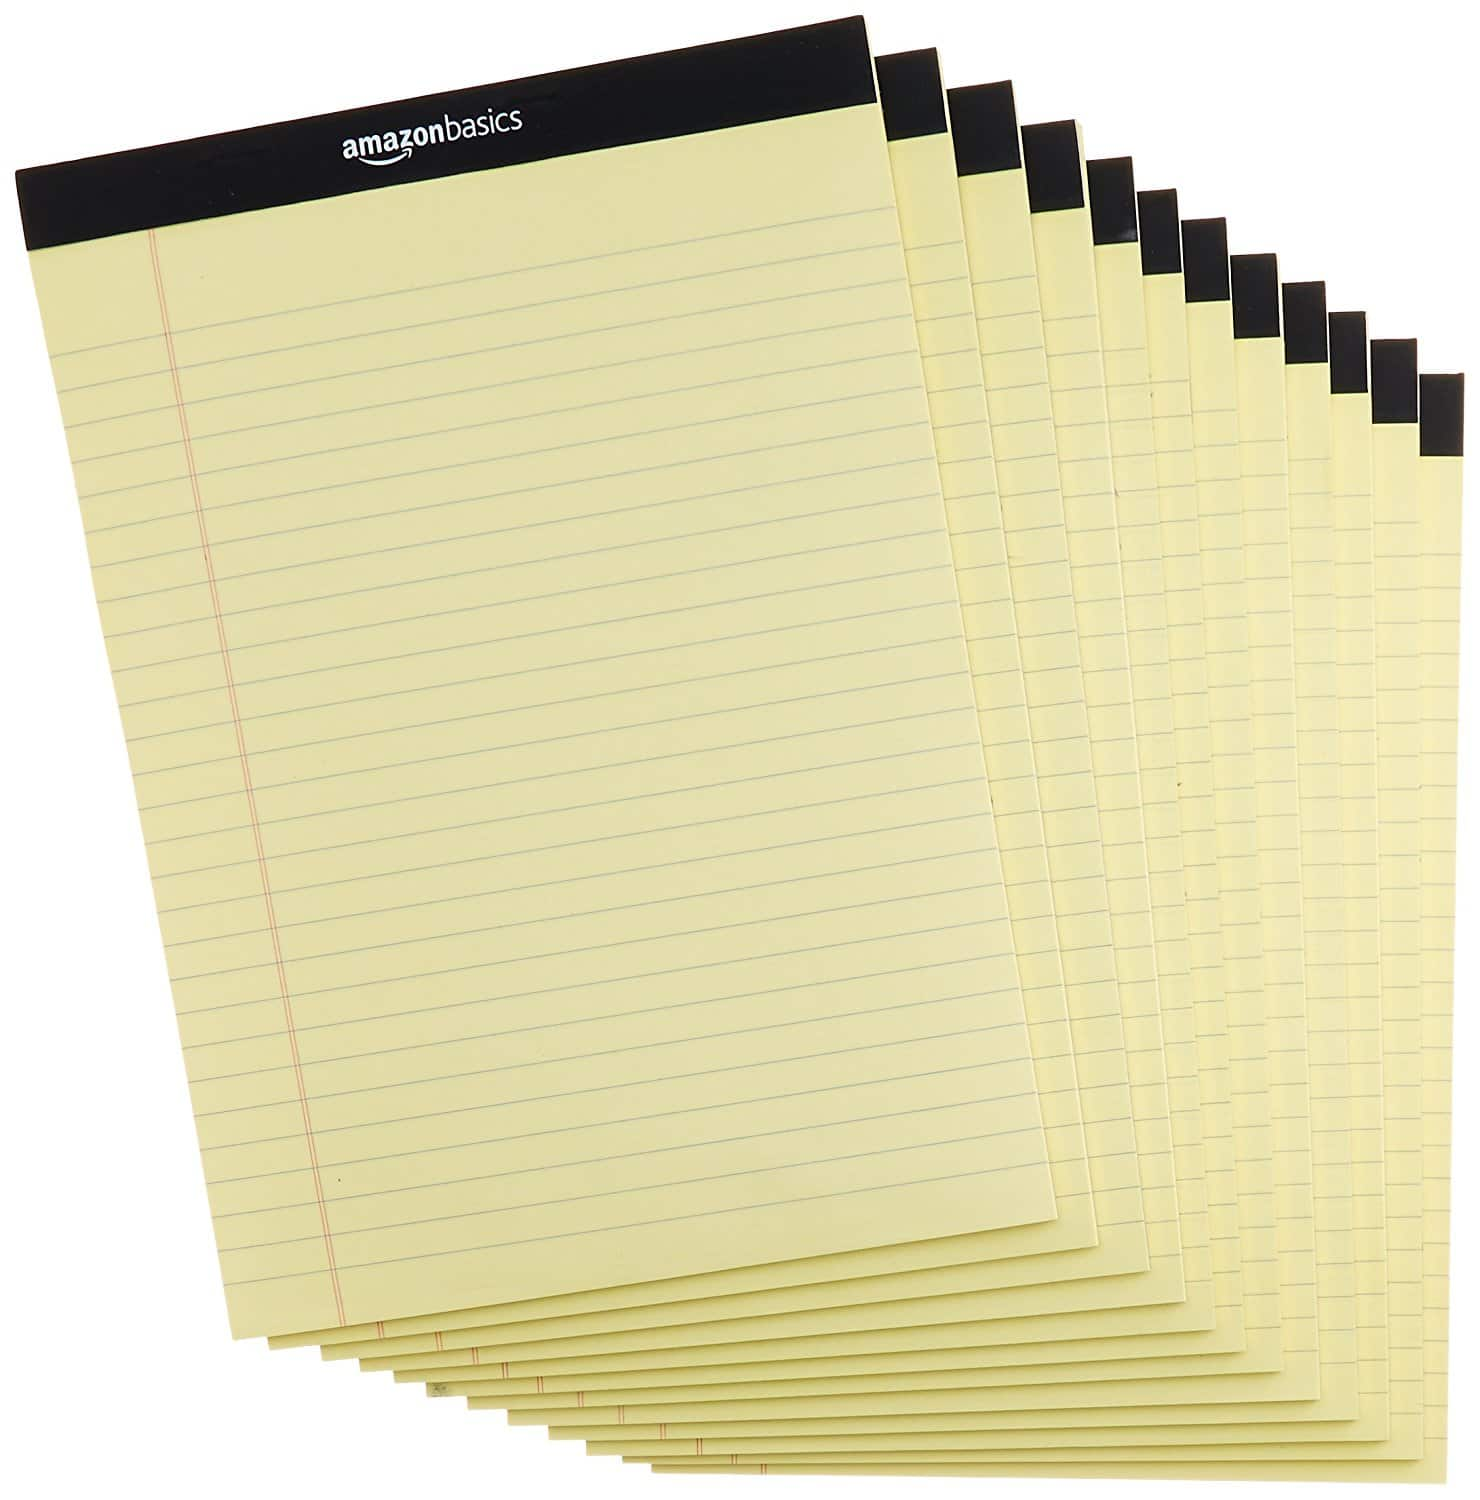 Legal/Wide Ruled 8-1/2 by 11-3/4 Legal Pad - Canary (50 sheets per pad, 12 pack) $11.99